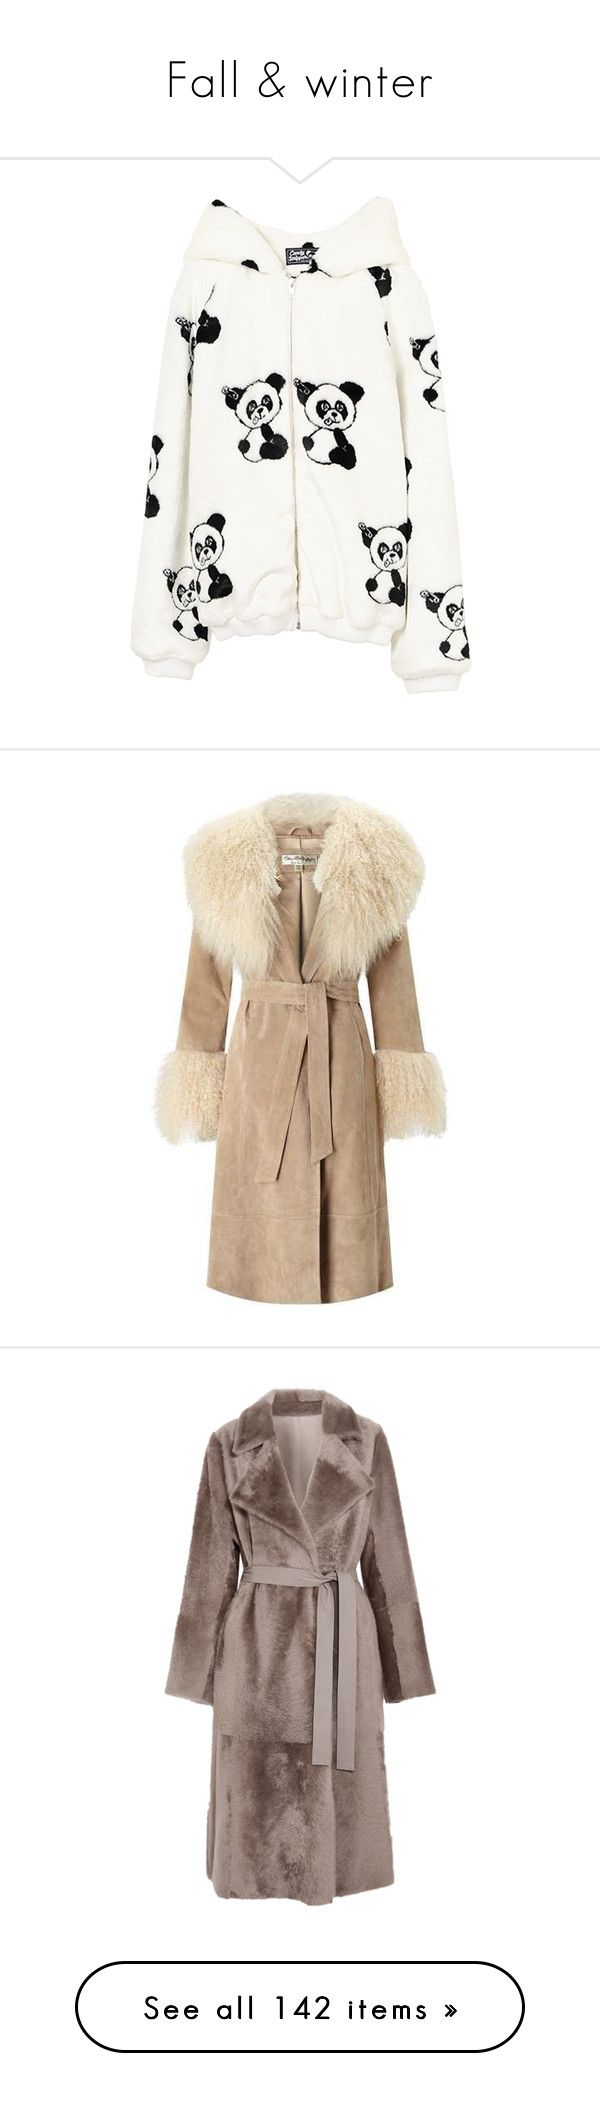 """Fall & winter"" by yh626 ❤ liked on Polyvore featuring outerwear, jackets, white jacket, puff jacket, fur puffer jacket, puffa jacket, fur jacket, coats, miss selfridge coats and tan faux fur coat"